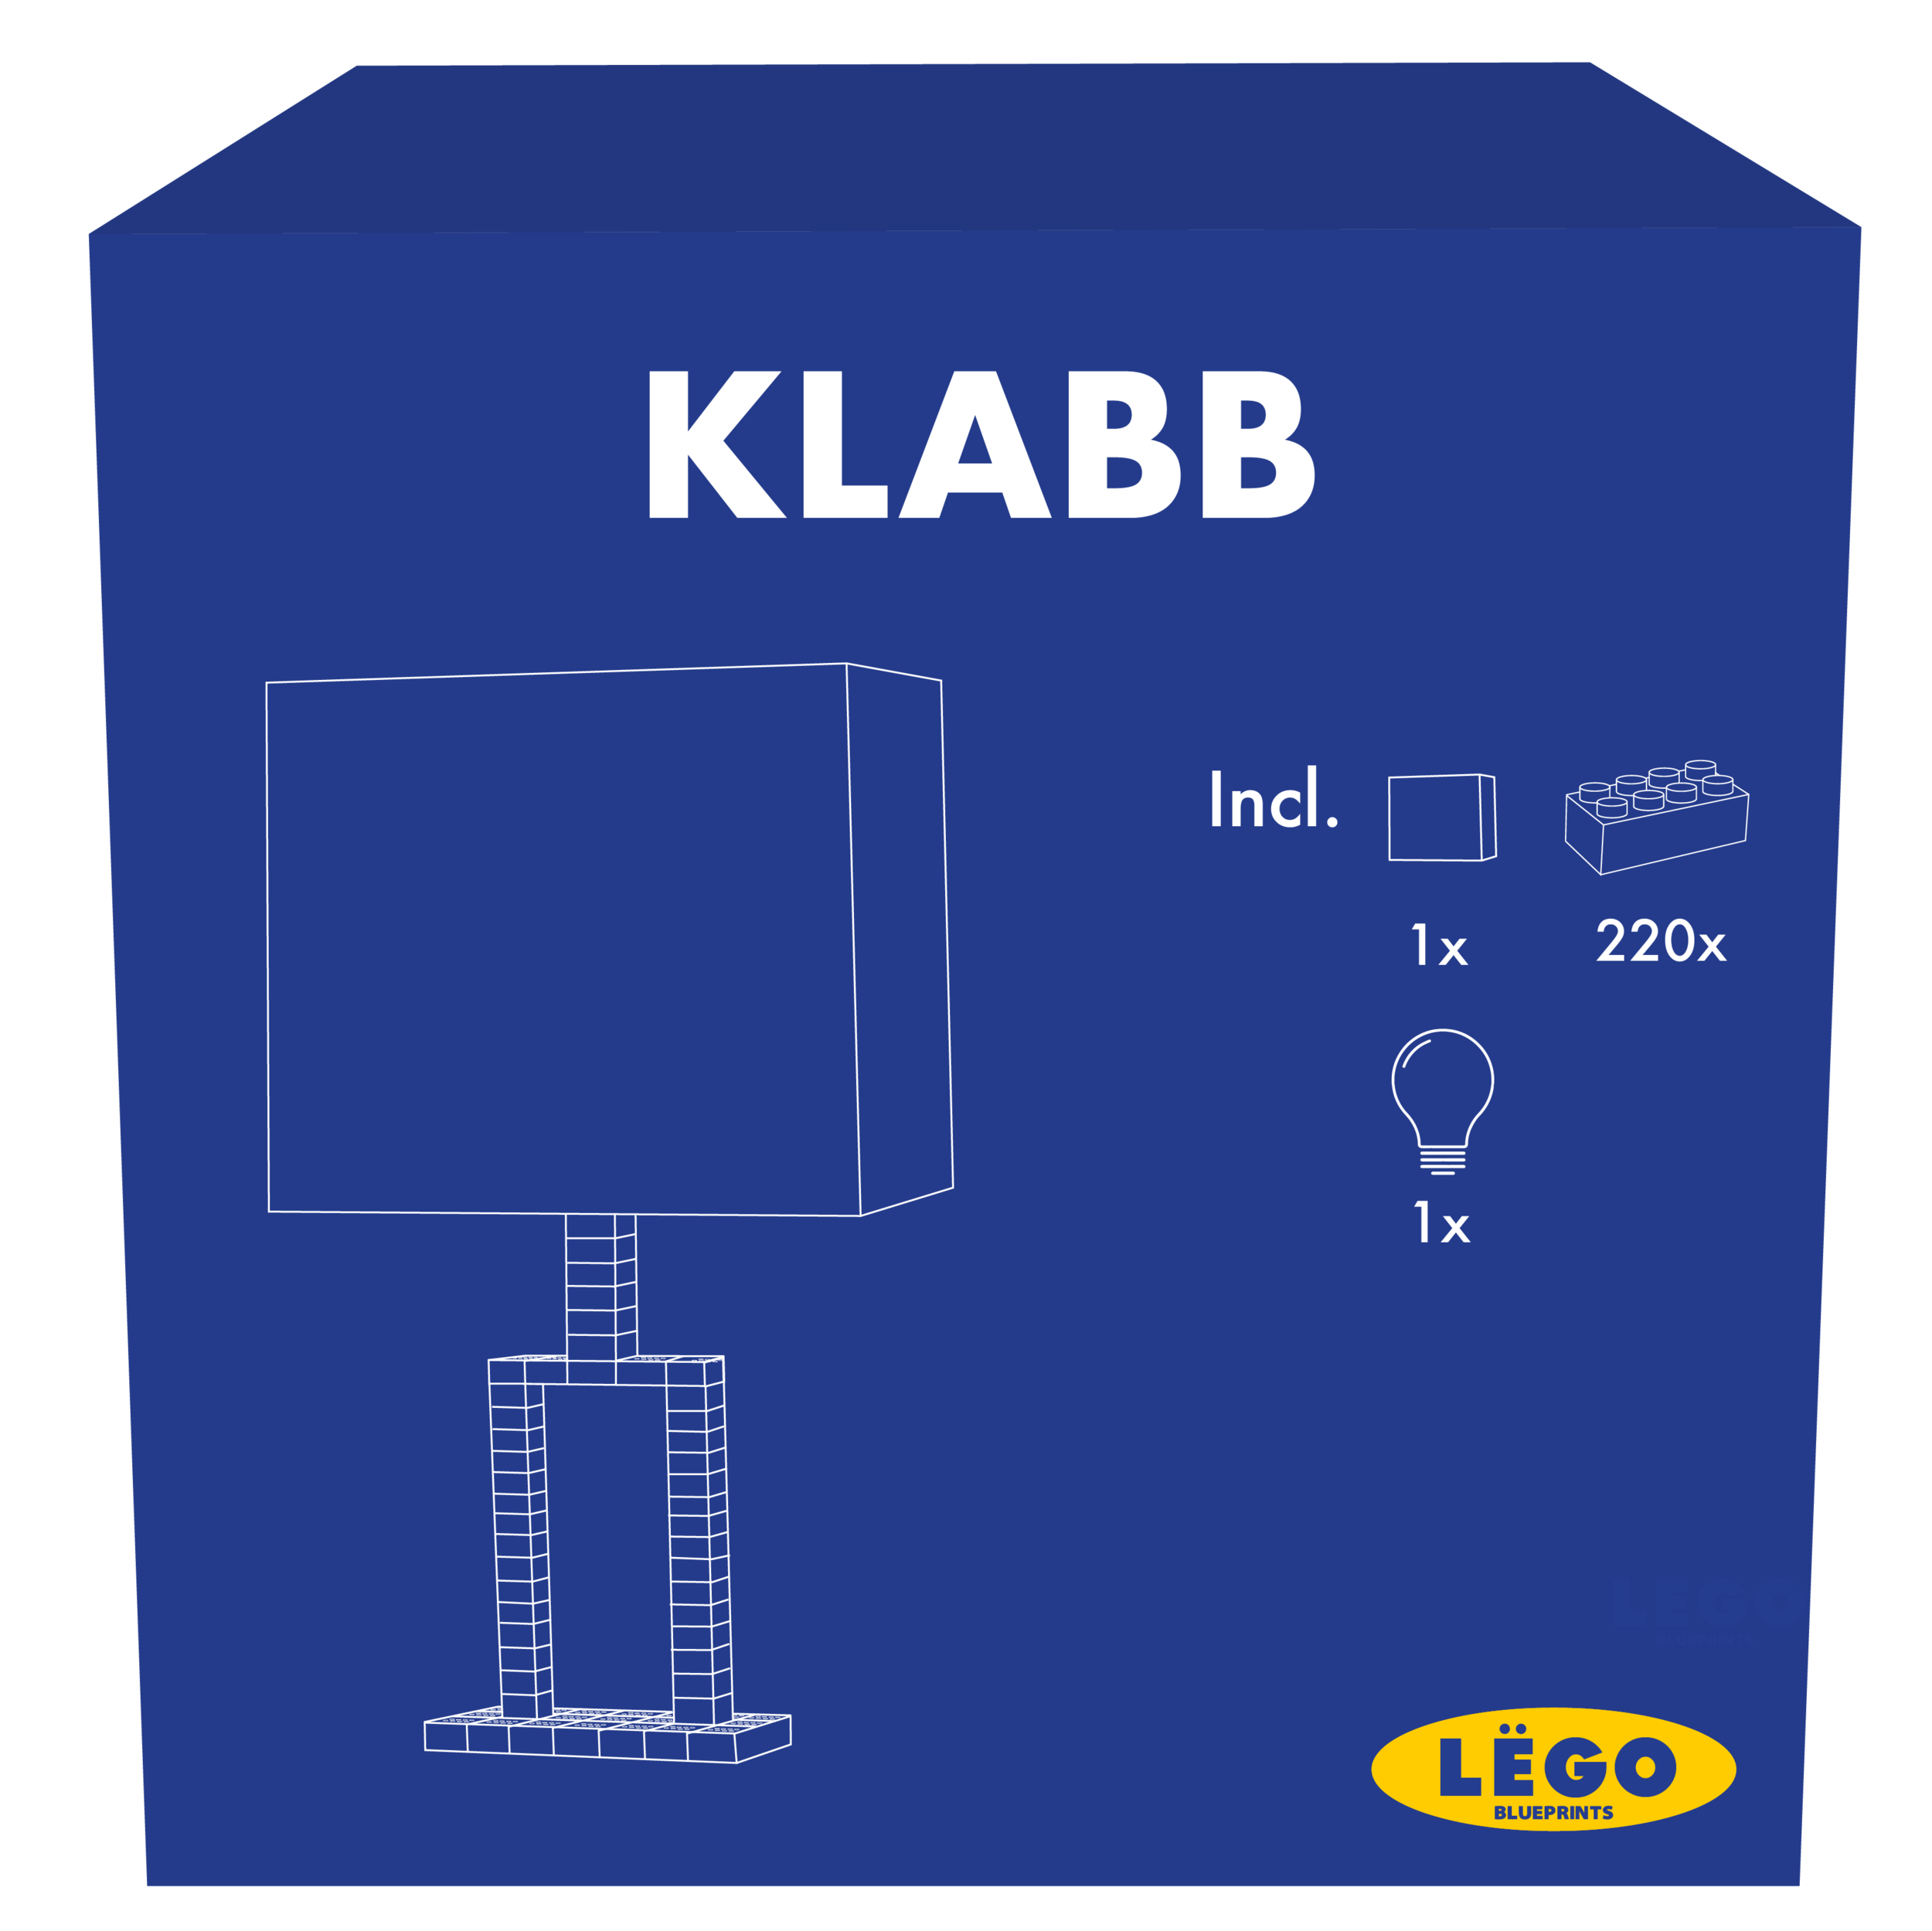 lego blueprint instructions and boxes-06.png